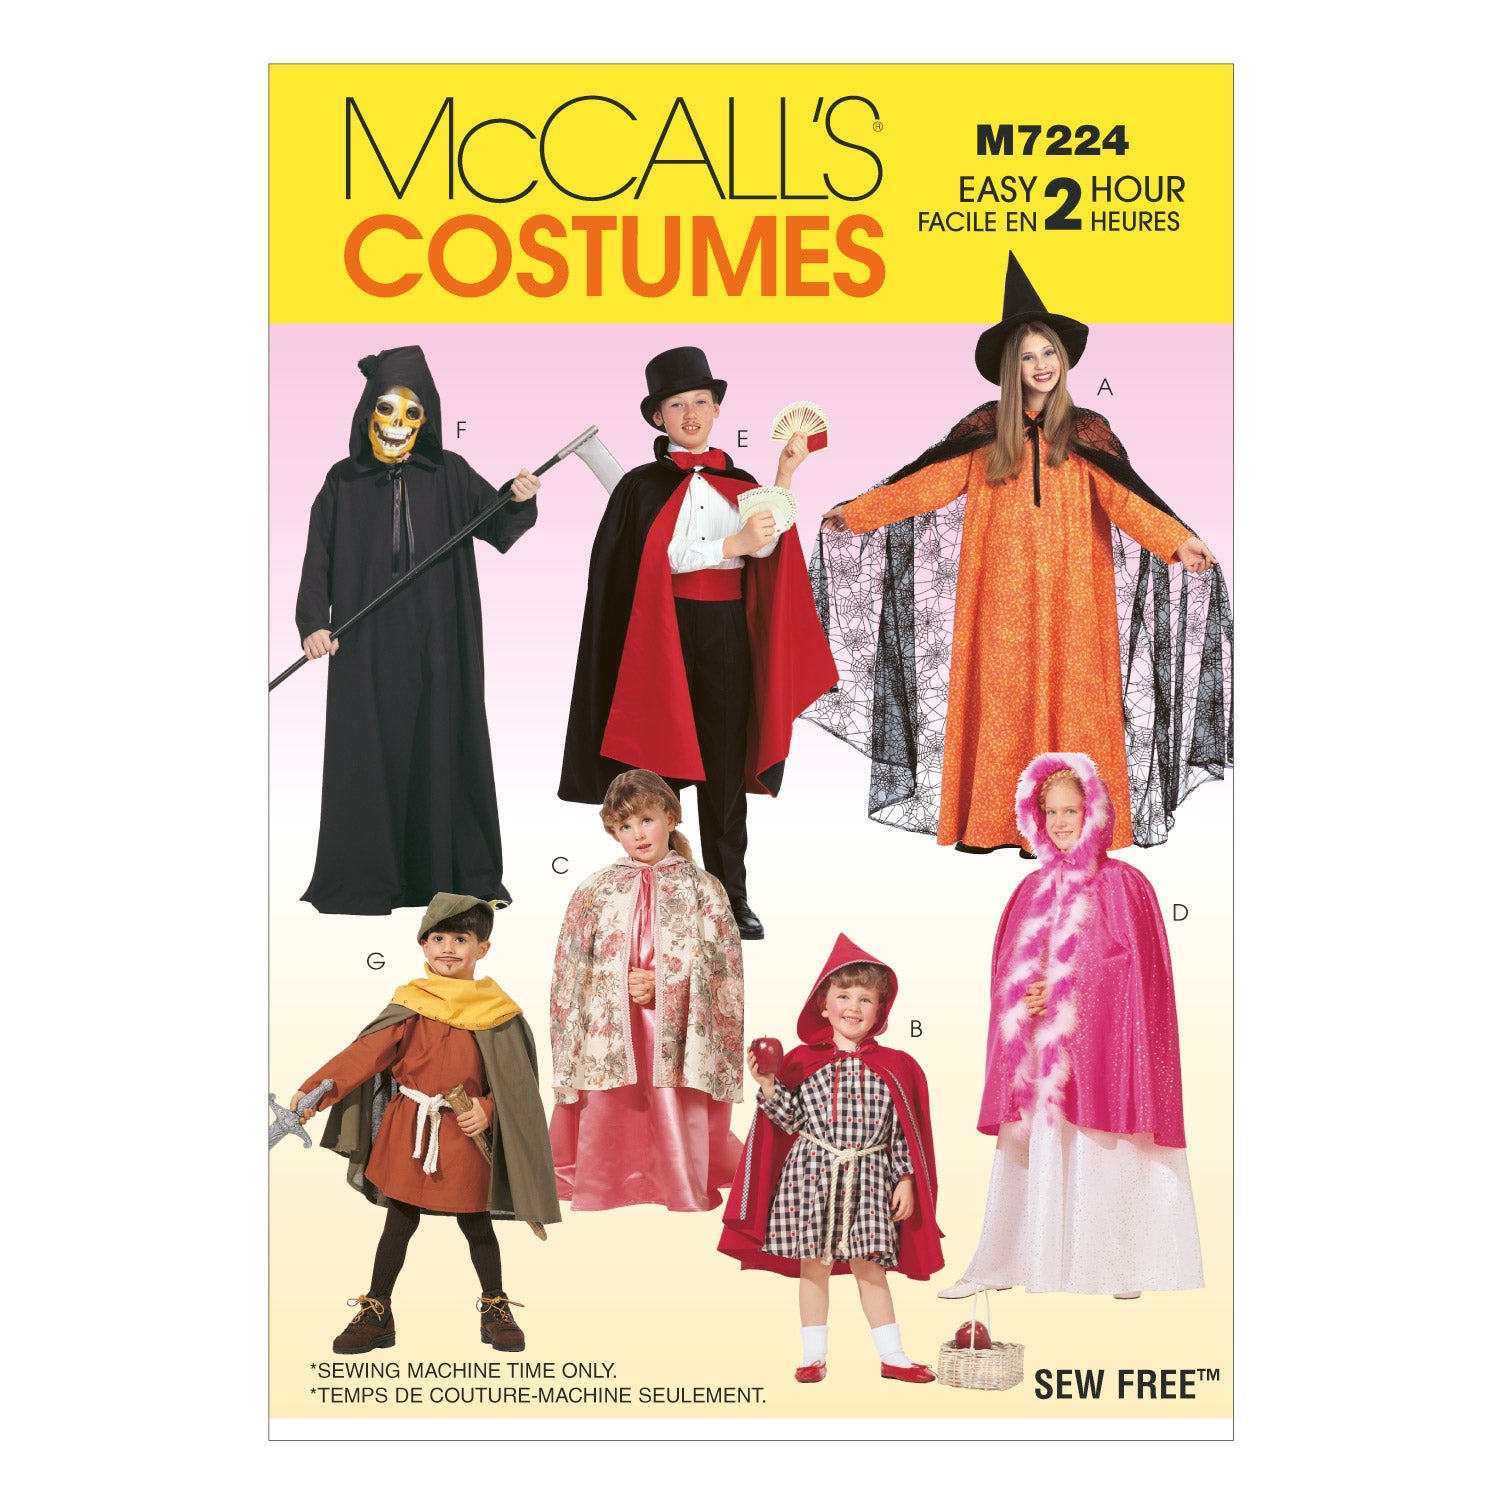 McCall's M7224KID Children's, Boys' and Girls' Cape and Tunic Costumes All Sizes In One Envelope